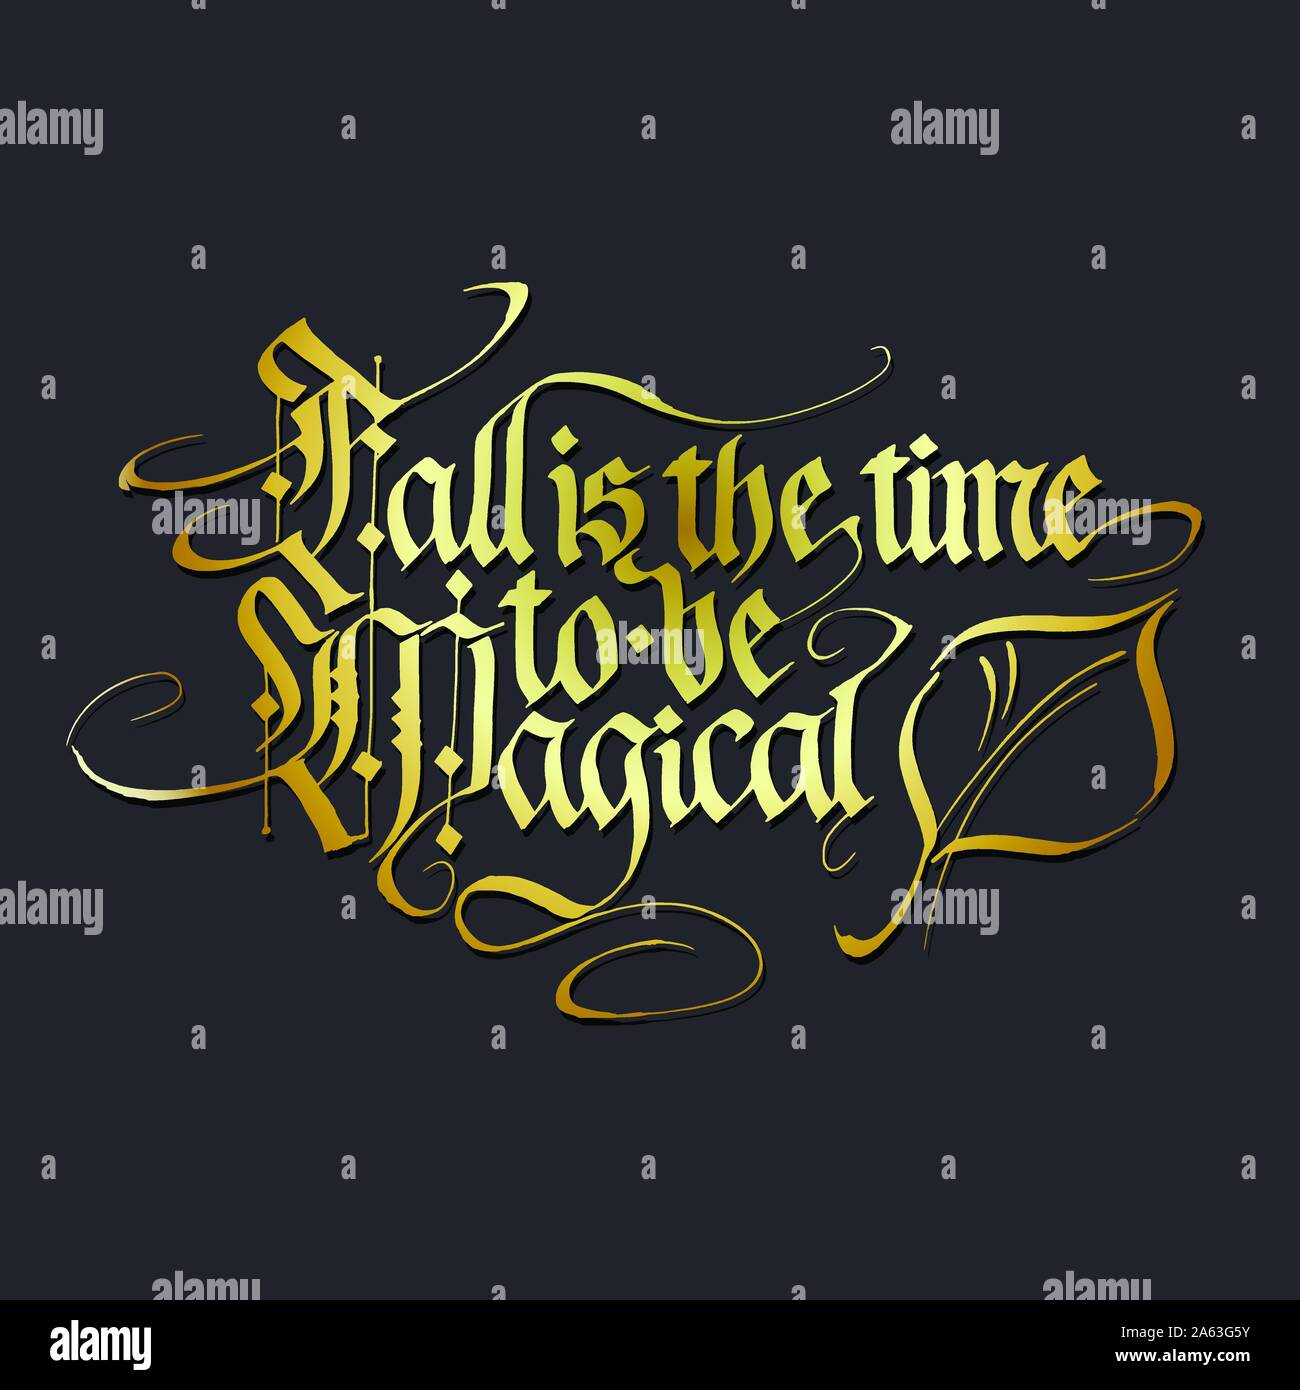 Blackletter Calligraphy High Resolution Stock Photography And Images Alamy